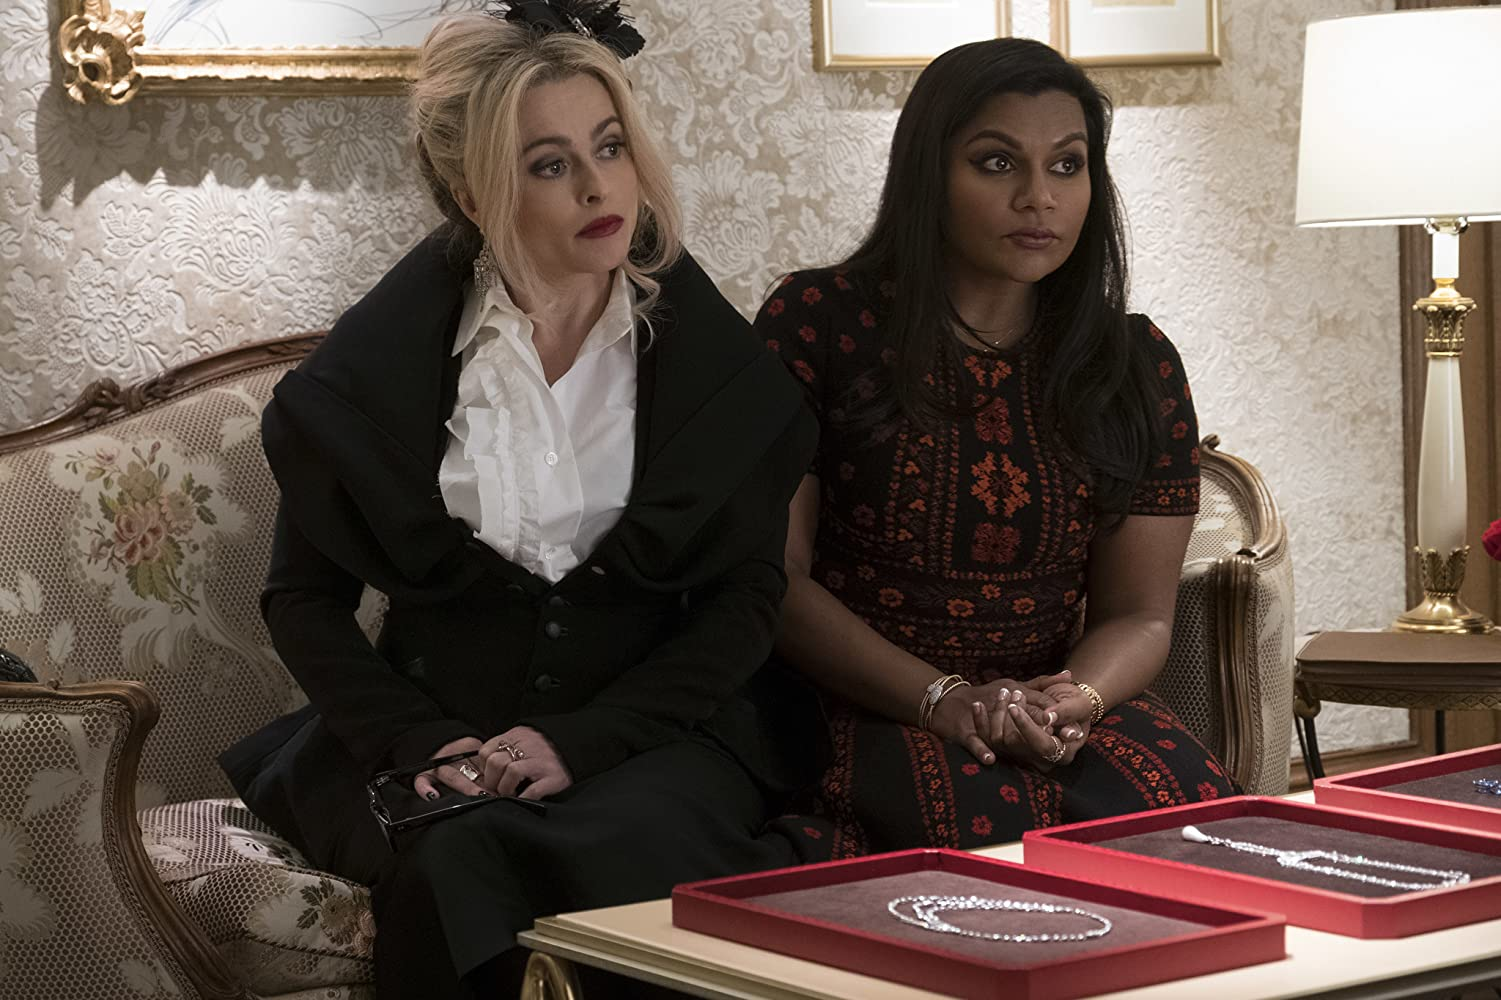 Helena Bonham Carter and Mindy Kaling in Ocean's 8 (2018)